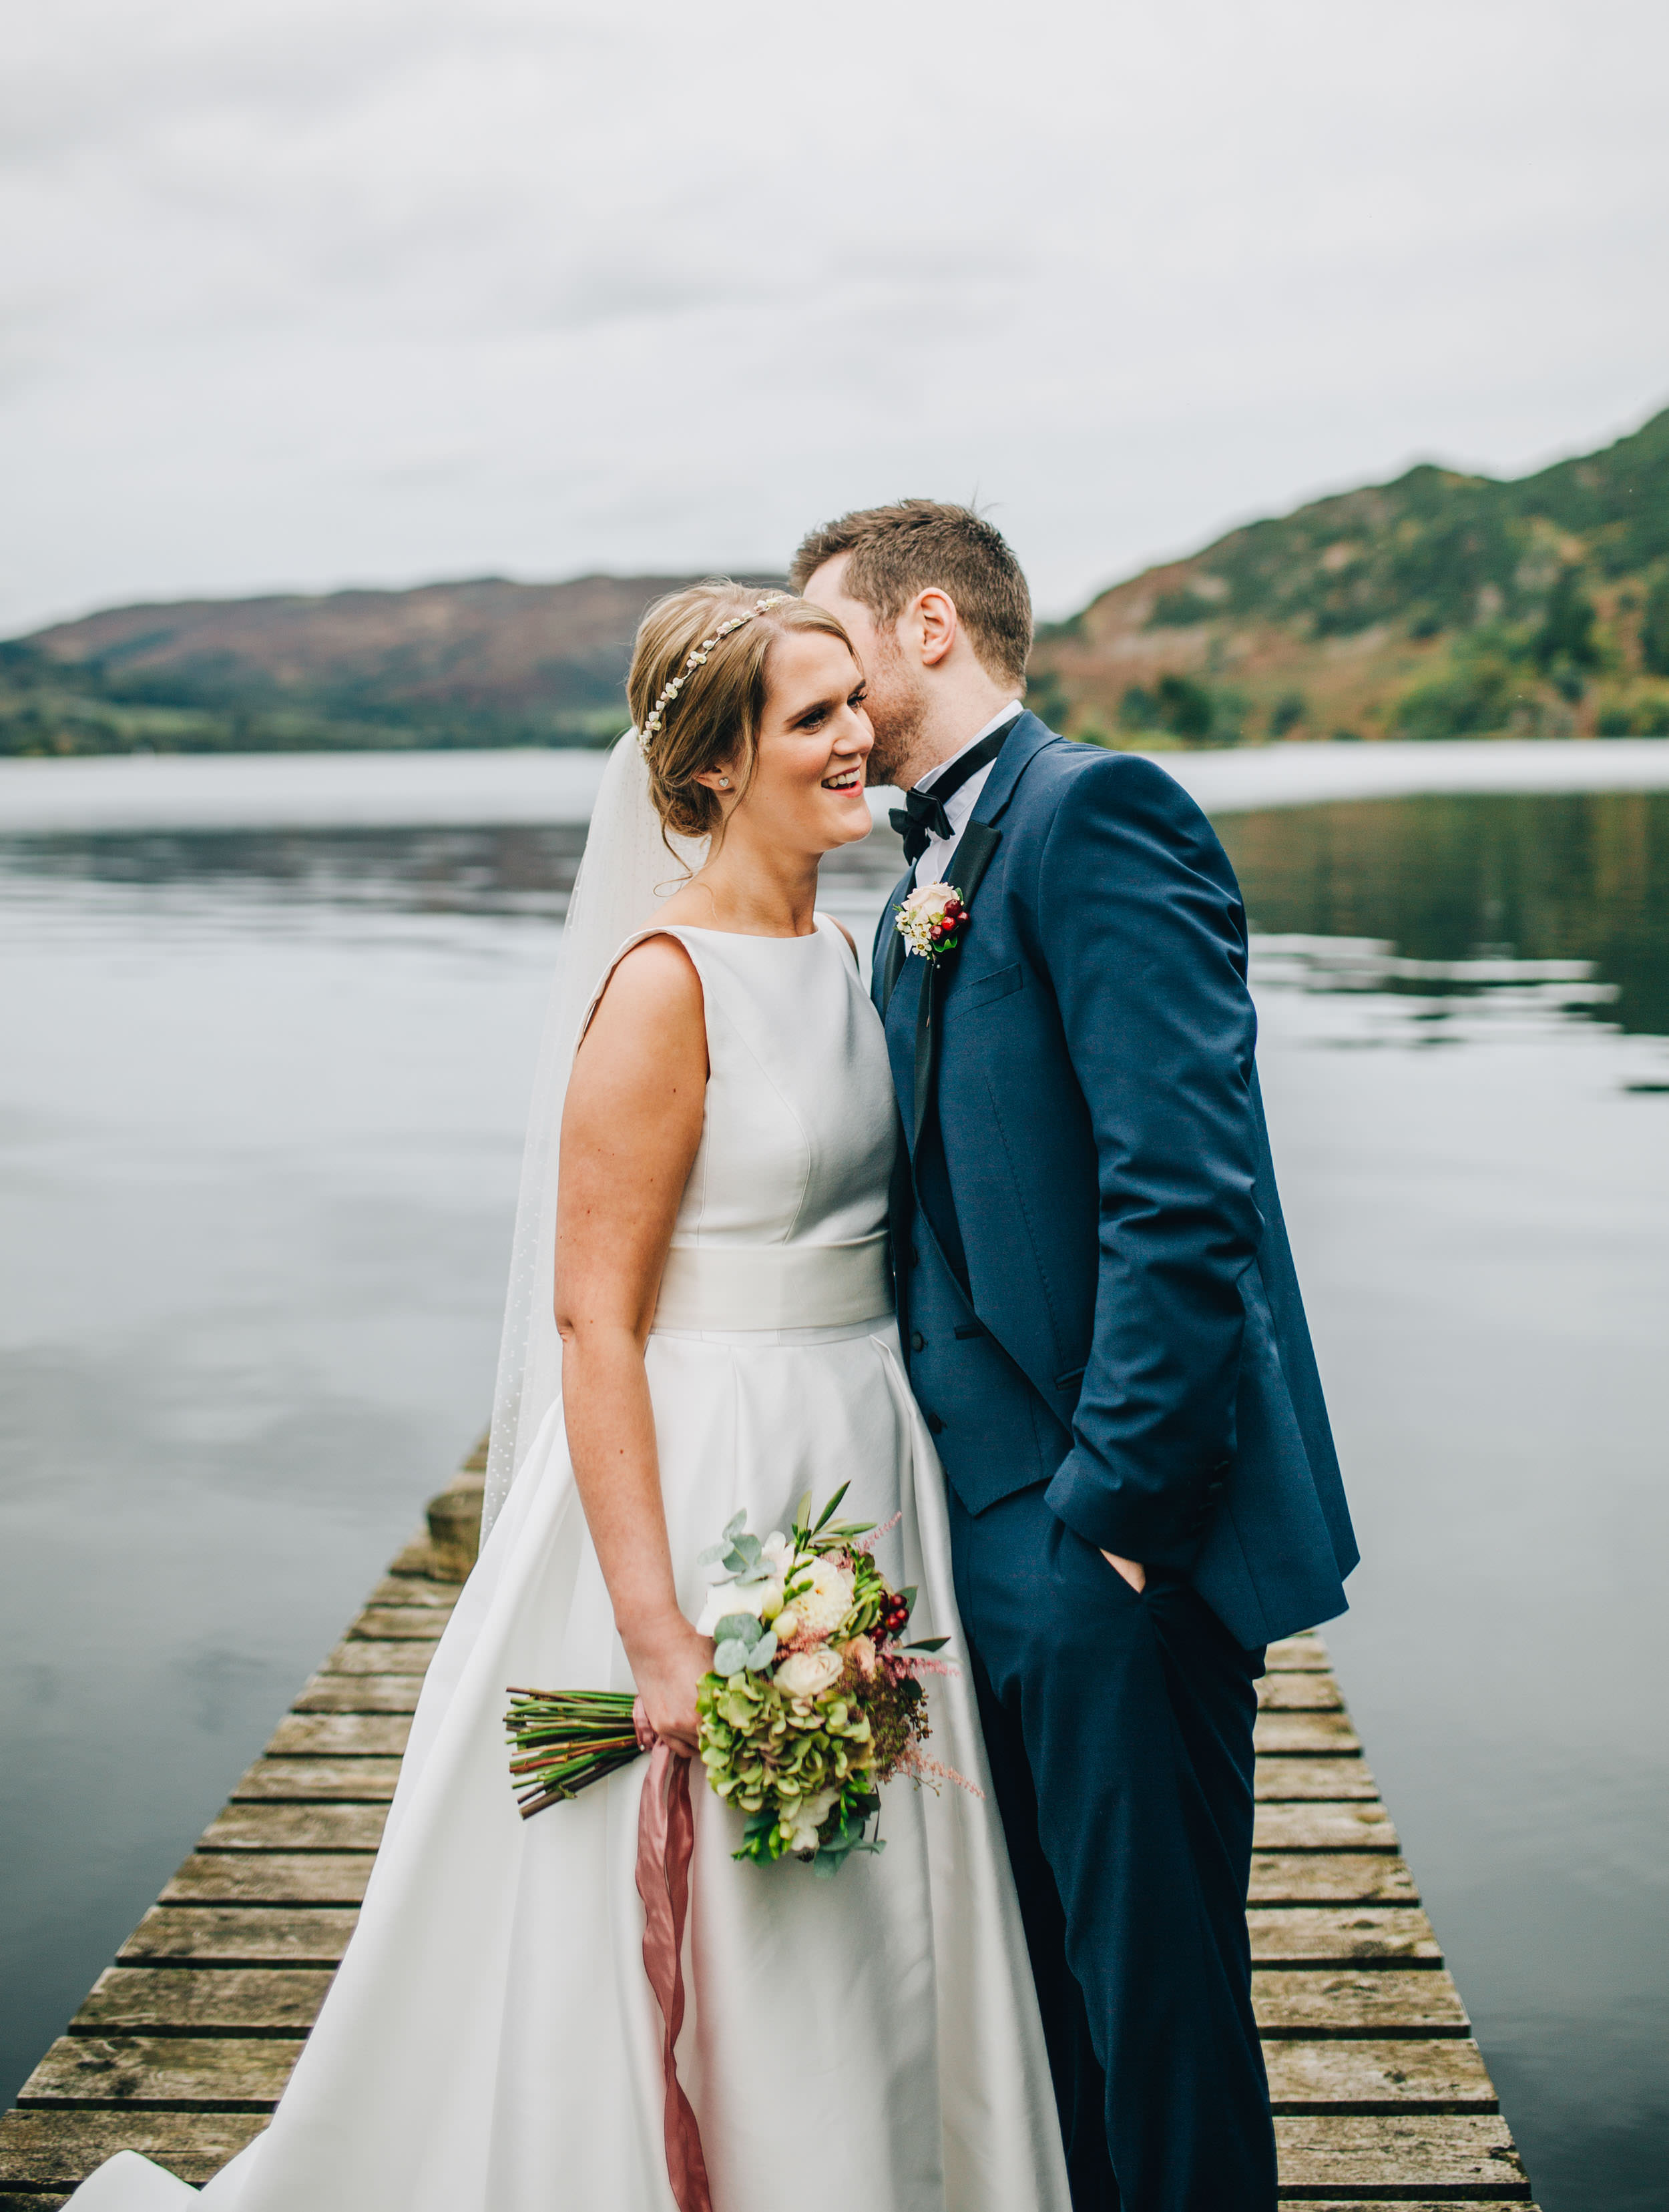 Inn on the Lake wedding pictures - Lake District wedding photography